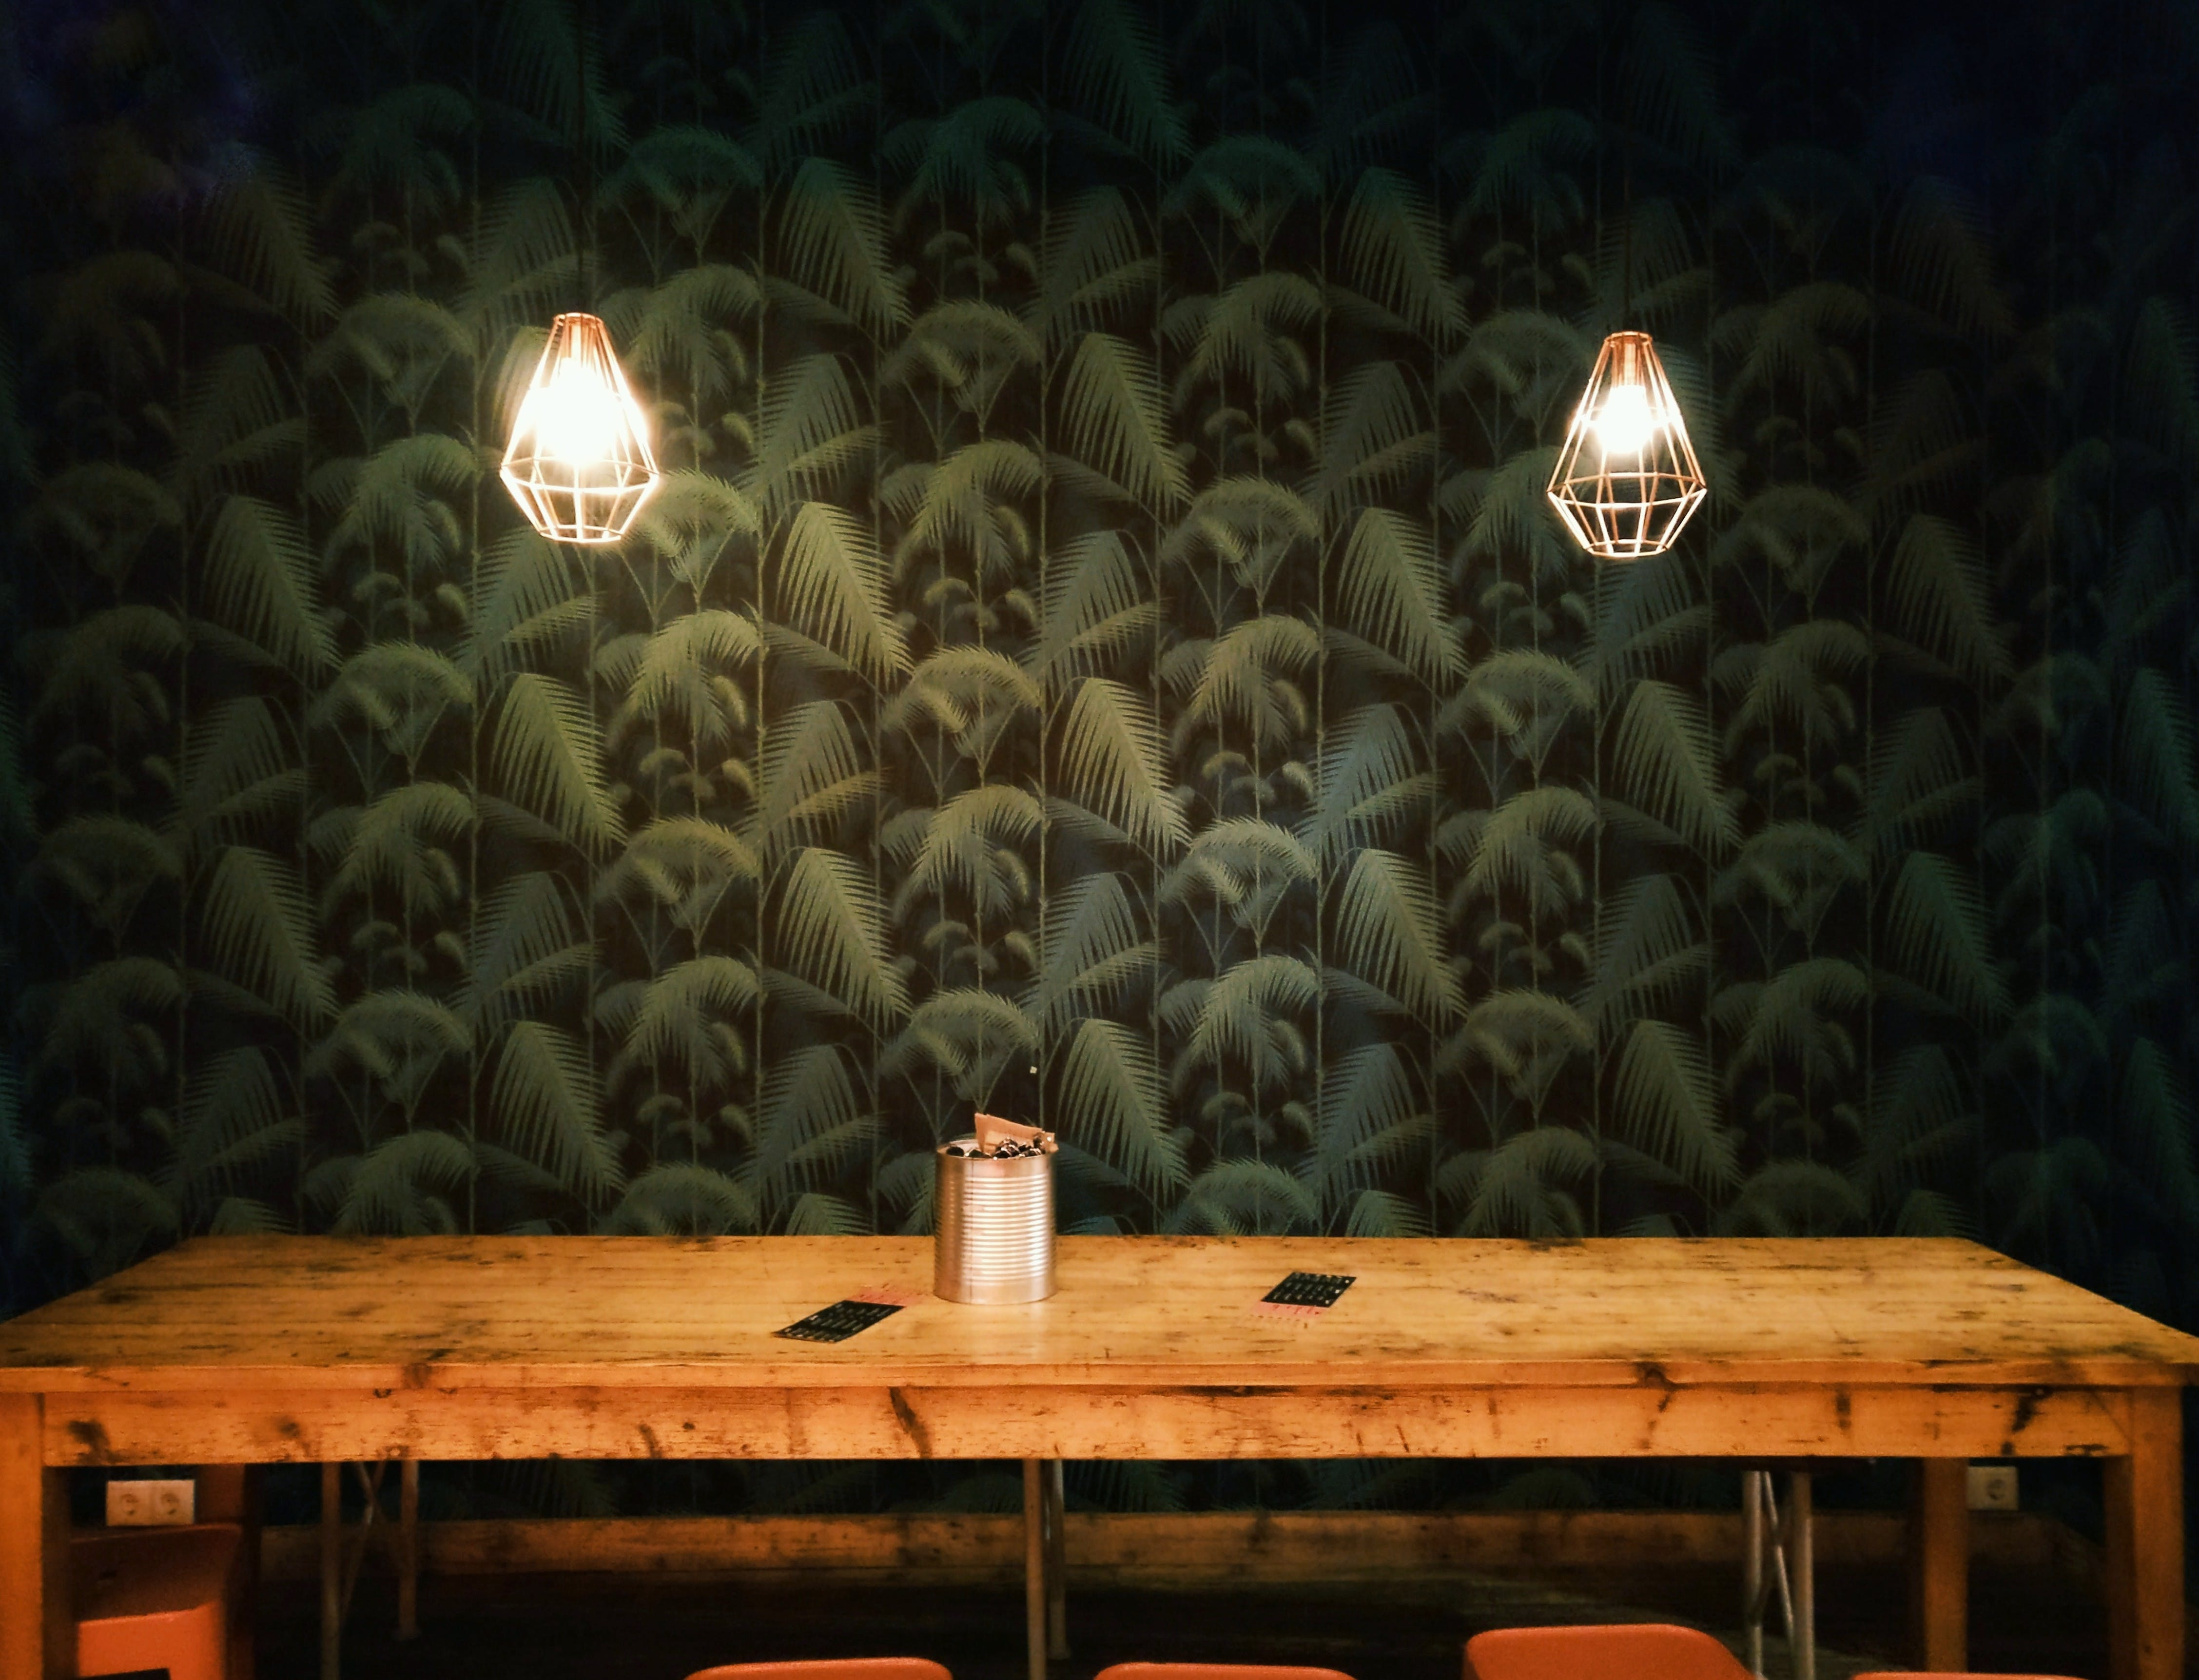 Free stock photo of wood, lights, table, rustic